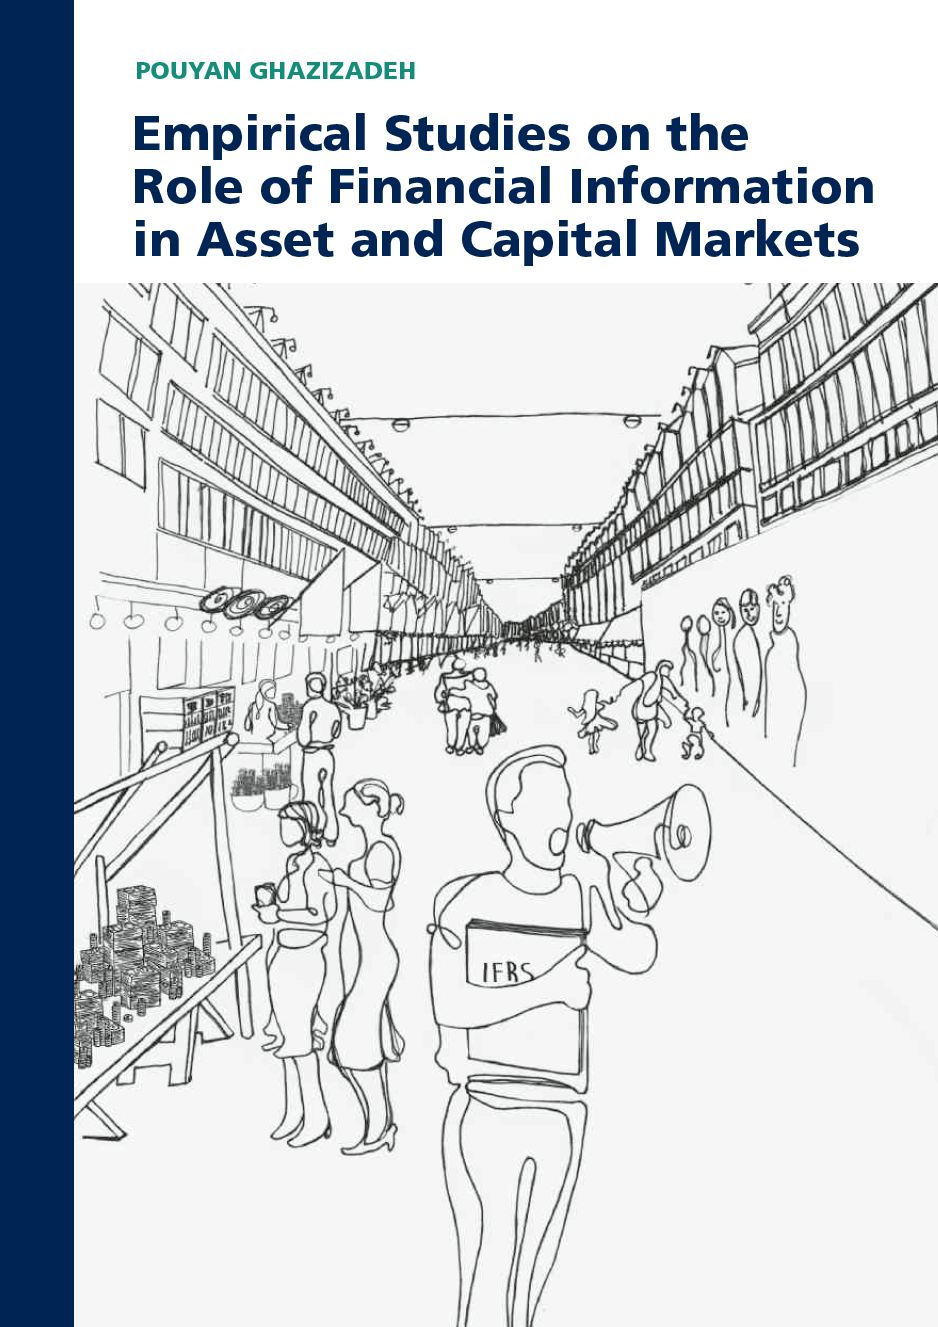 Empirical Studies on the Role of Financial Information in Asset and Capital Markets